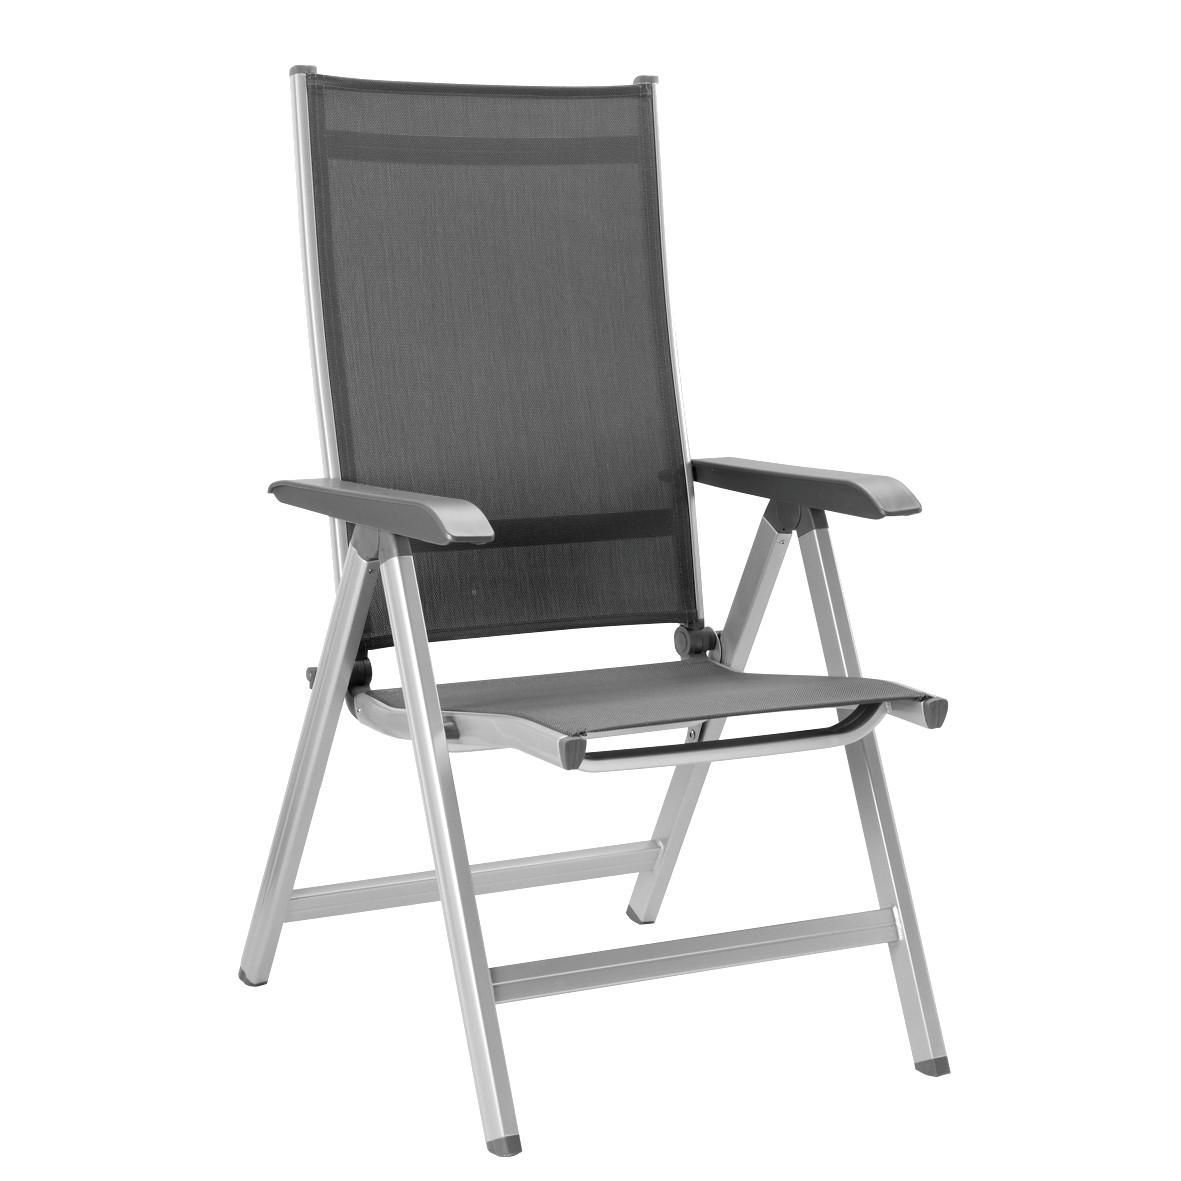 Kettler Basic Plus Aluminum Patio Multi Position Dining Arm Chair Silver Frame Gray Sling Aluminum Arm B Garden Chairs Metal Aluminum Patio Garden Chairs